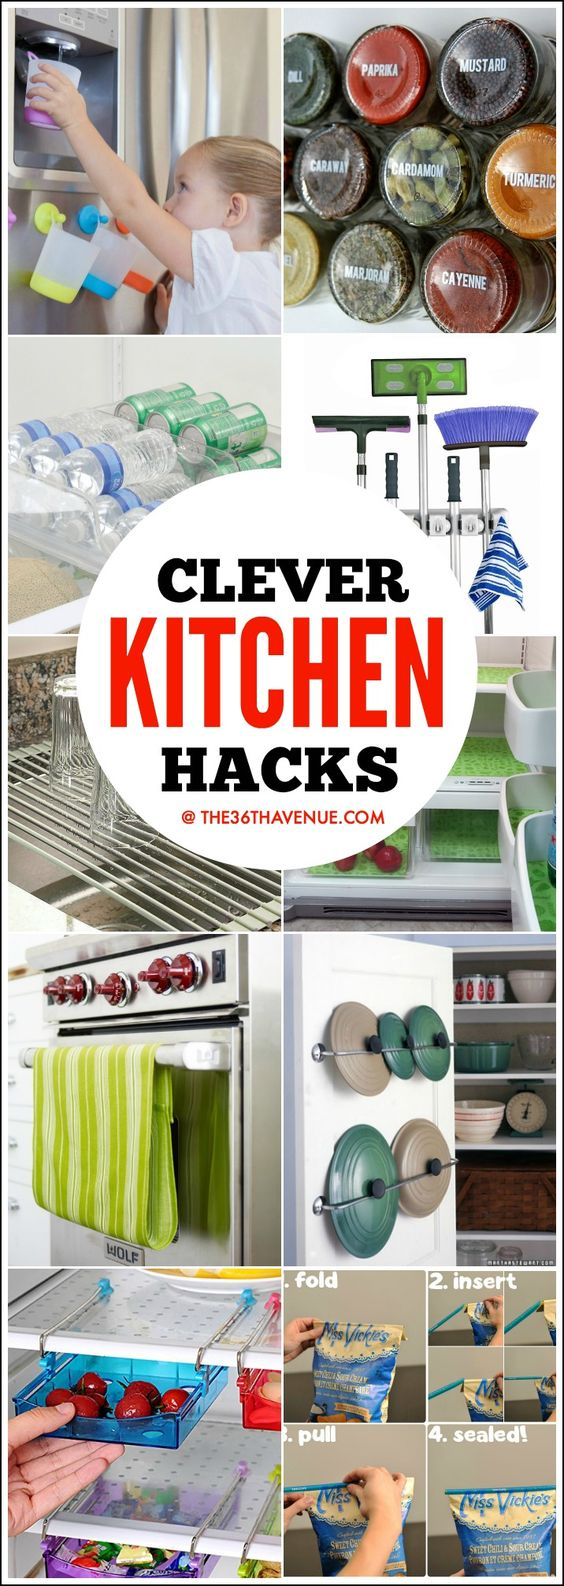 Top kitchen hacks and gadgets kitchen hacks your life for Kitchen organization hacks